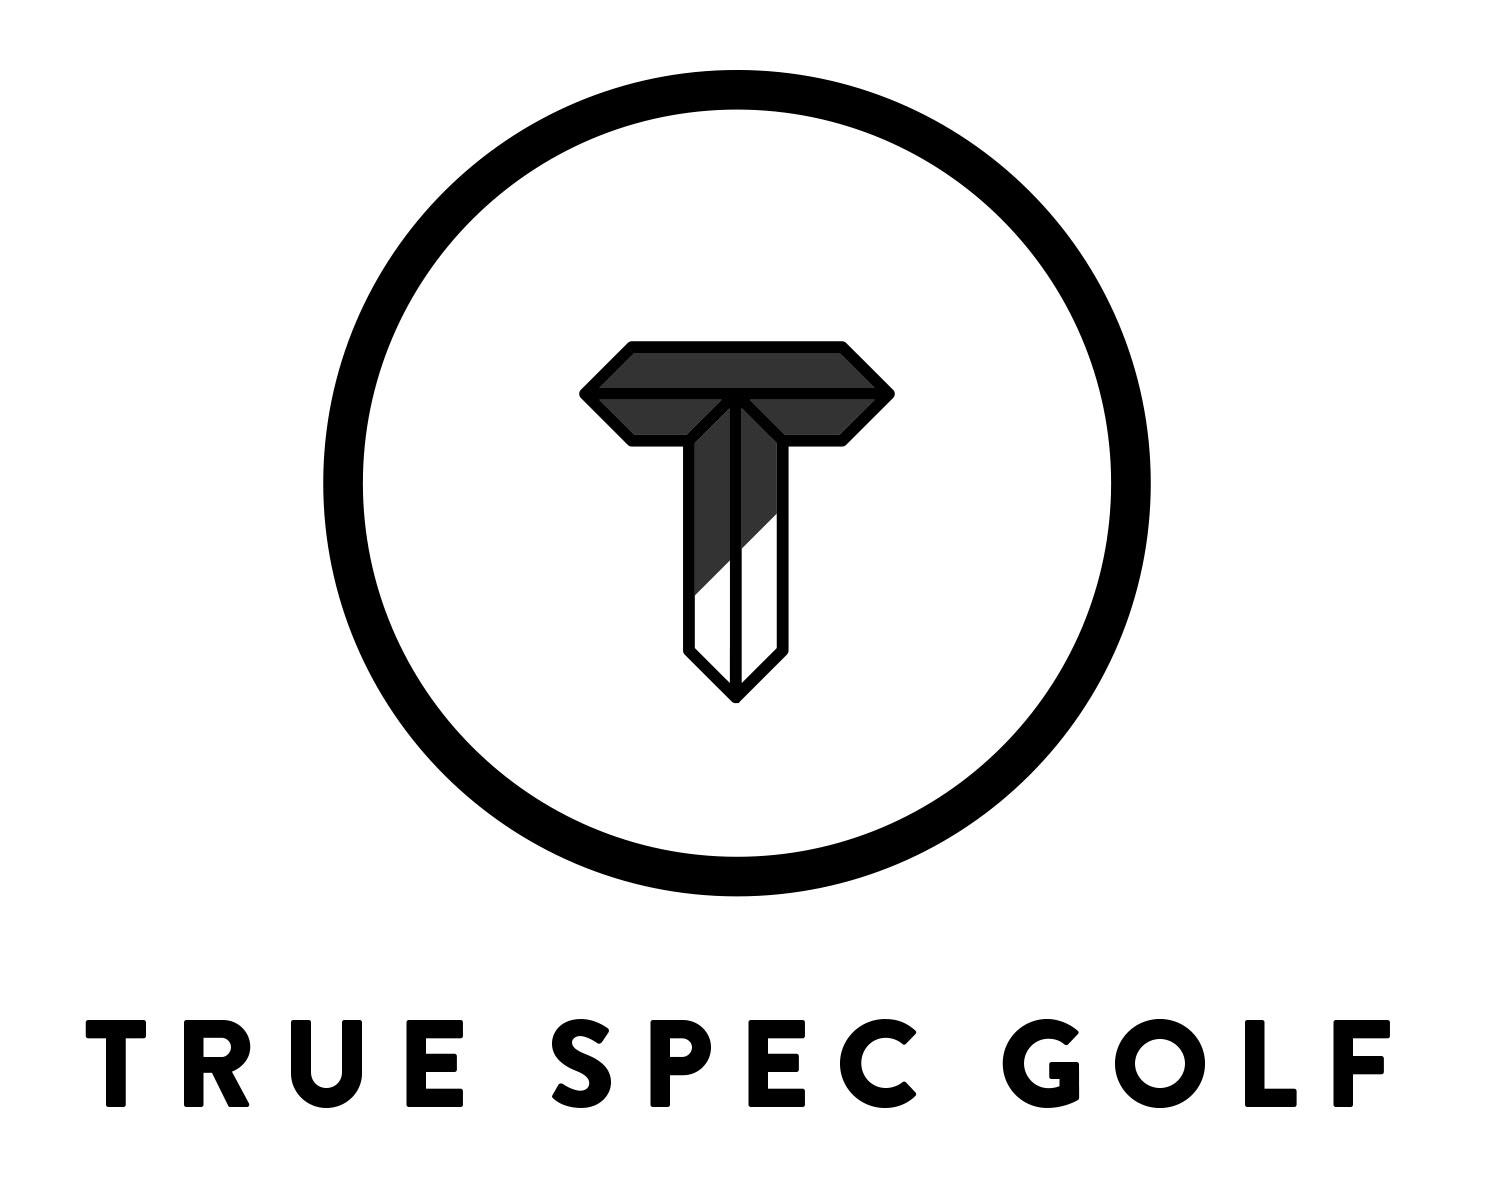 TRUE SPEC GOLF, BAHAMAS